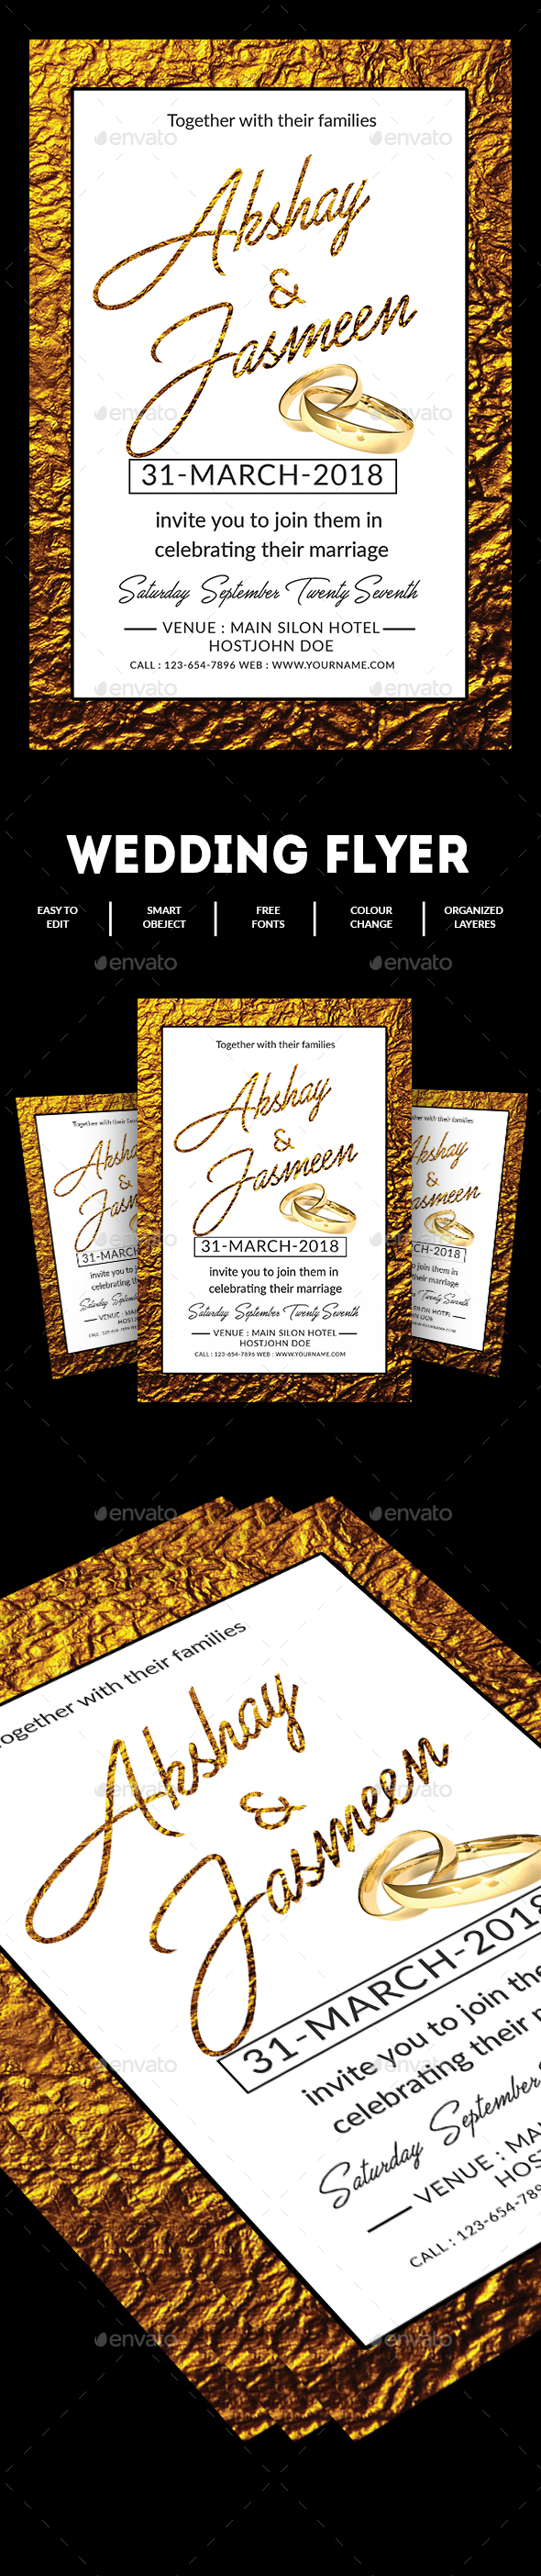 Wedding Flyer